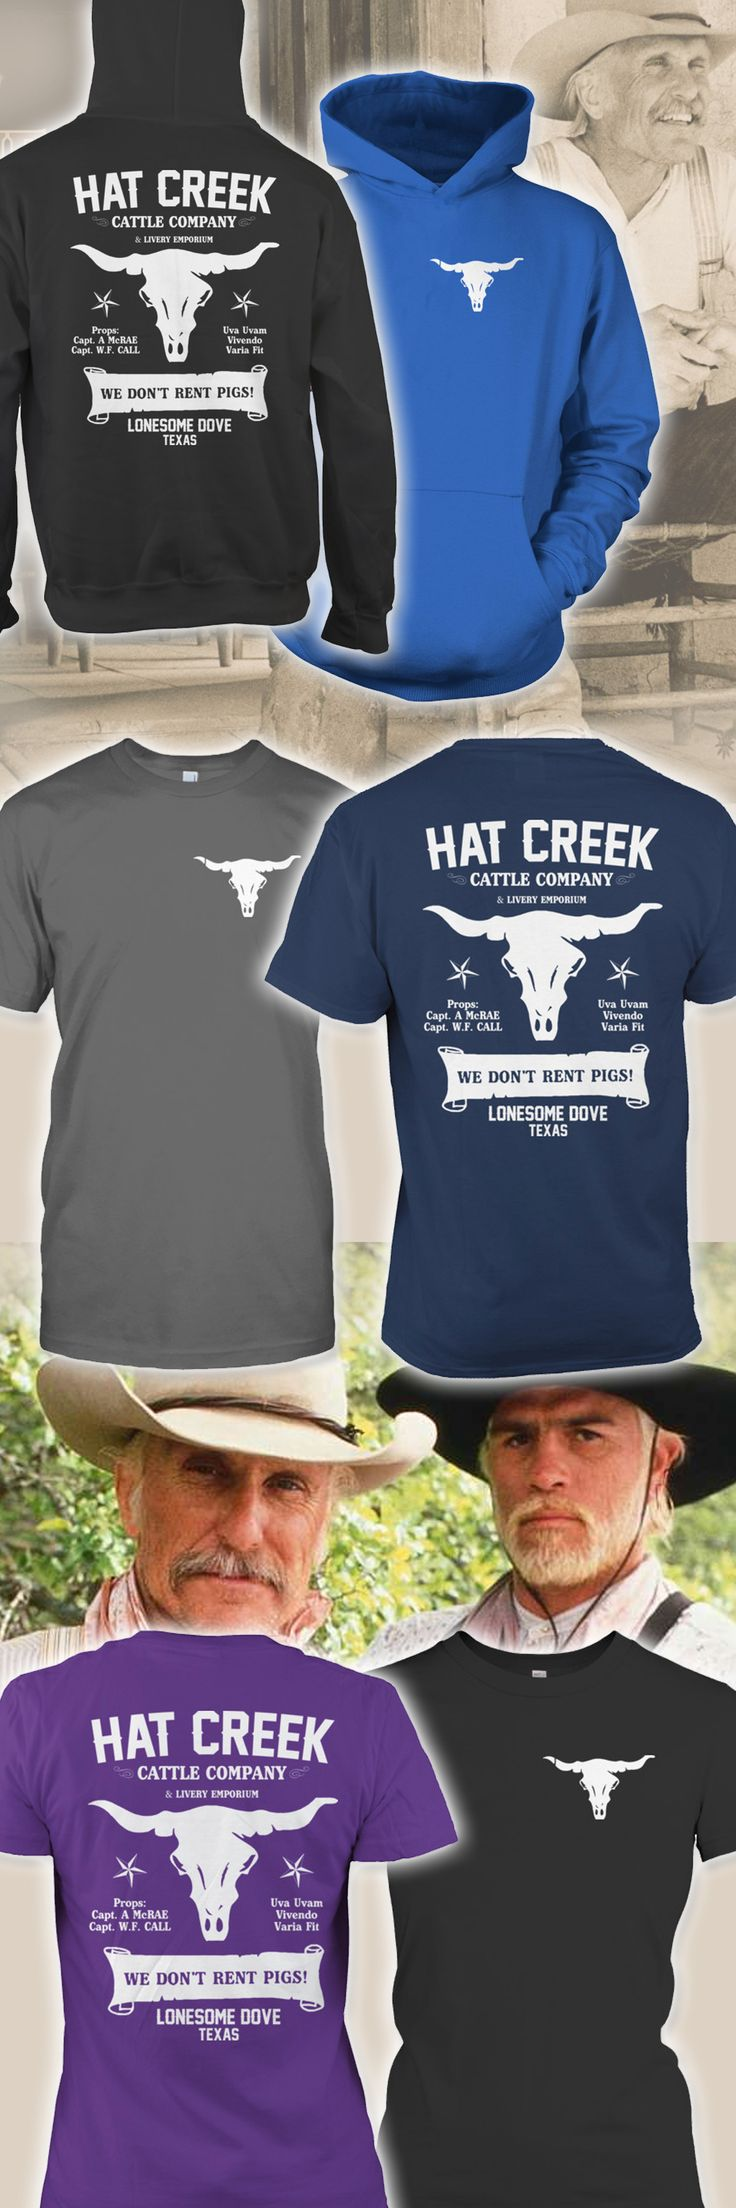 "I LOVE This Lonesome Dove shirt!  - So I bought one from here! :)  ""We Don't Rent Pigs"" :)"